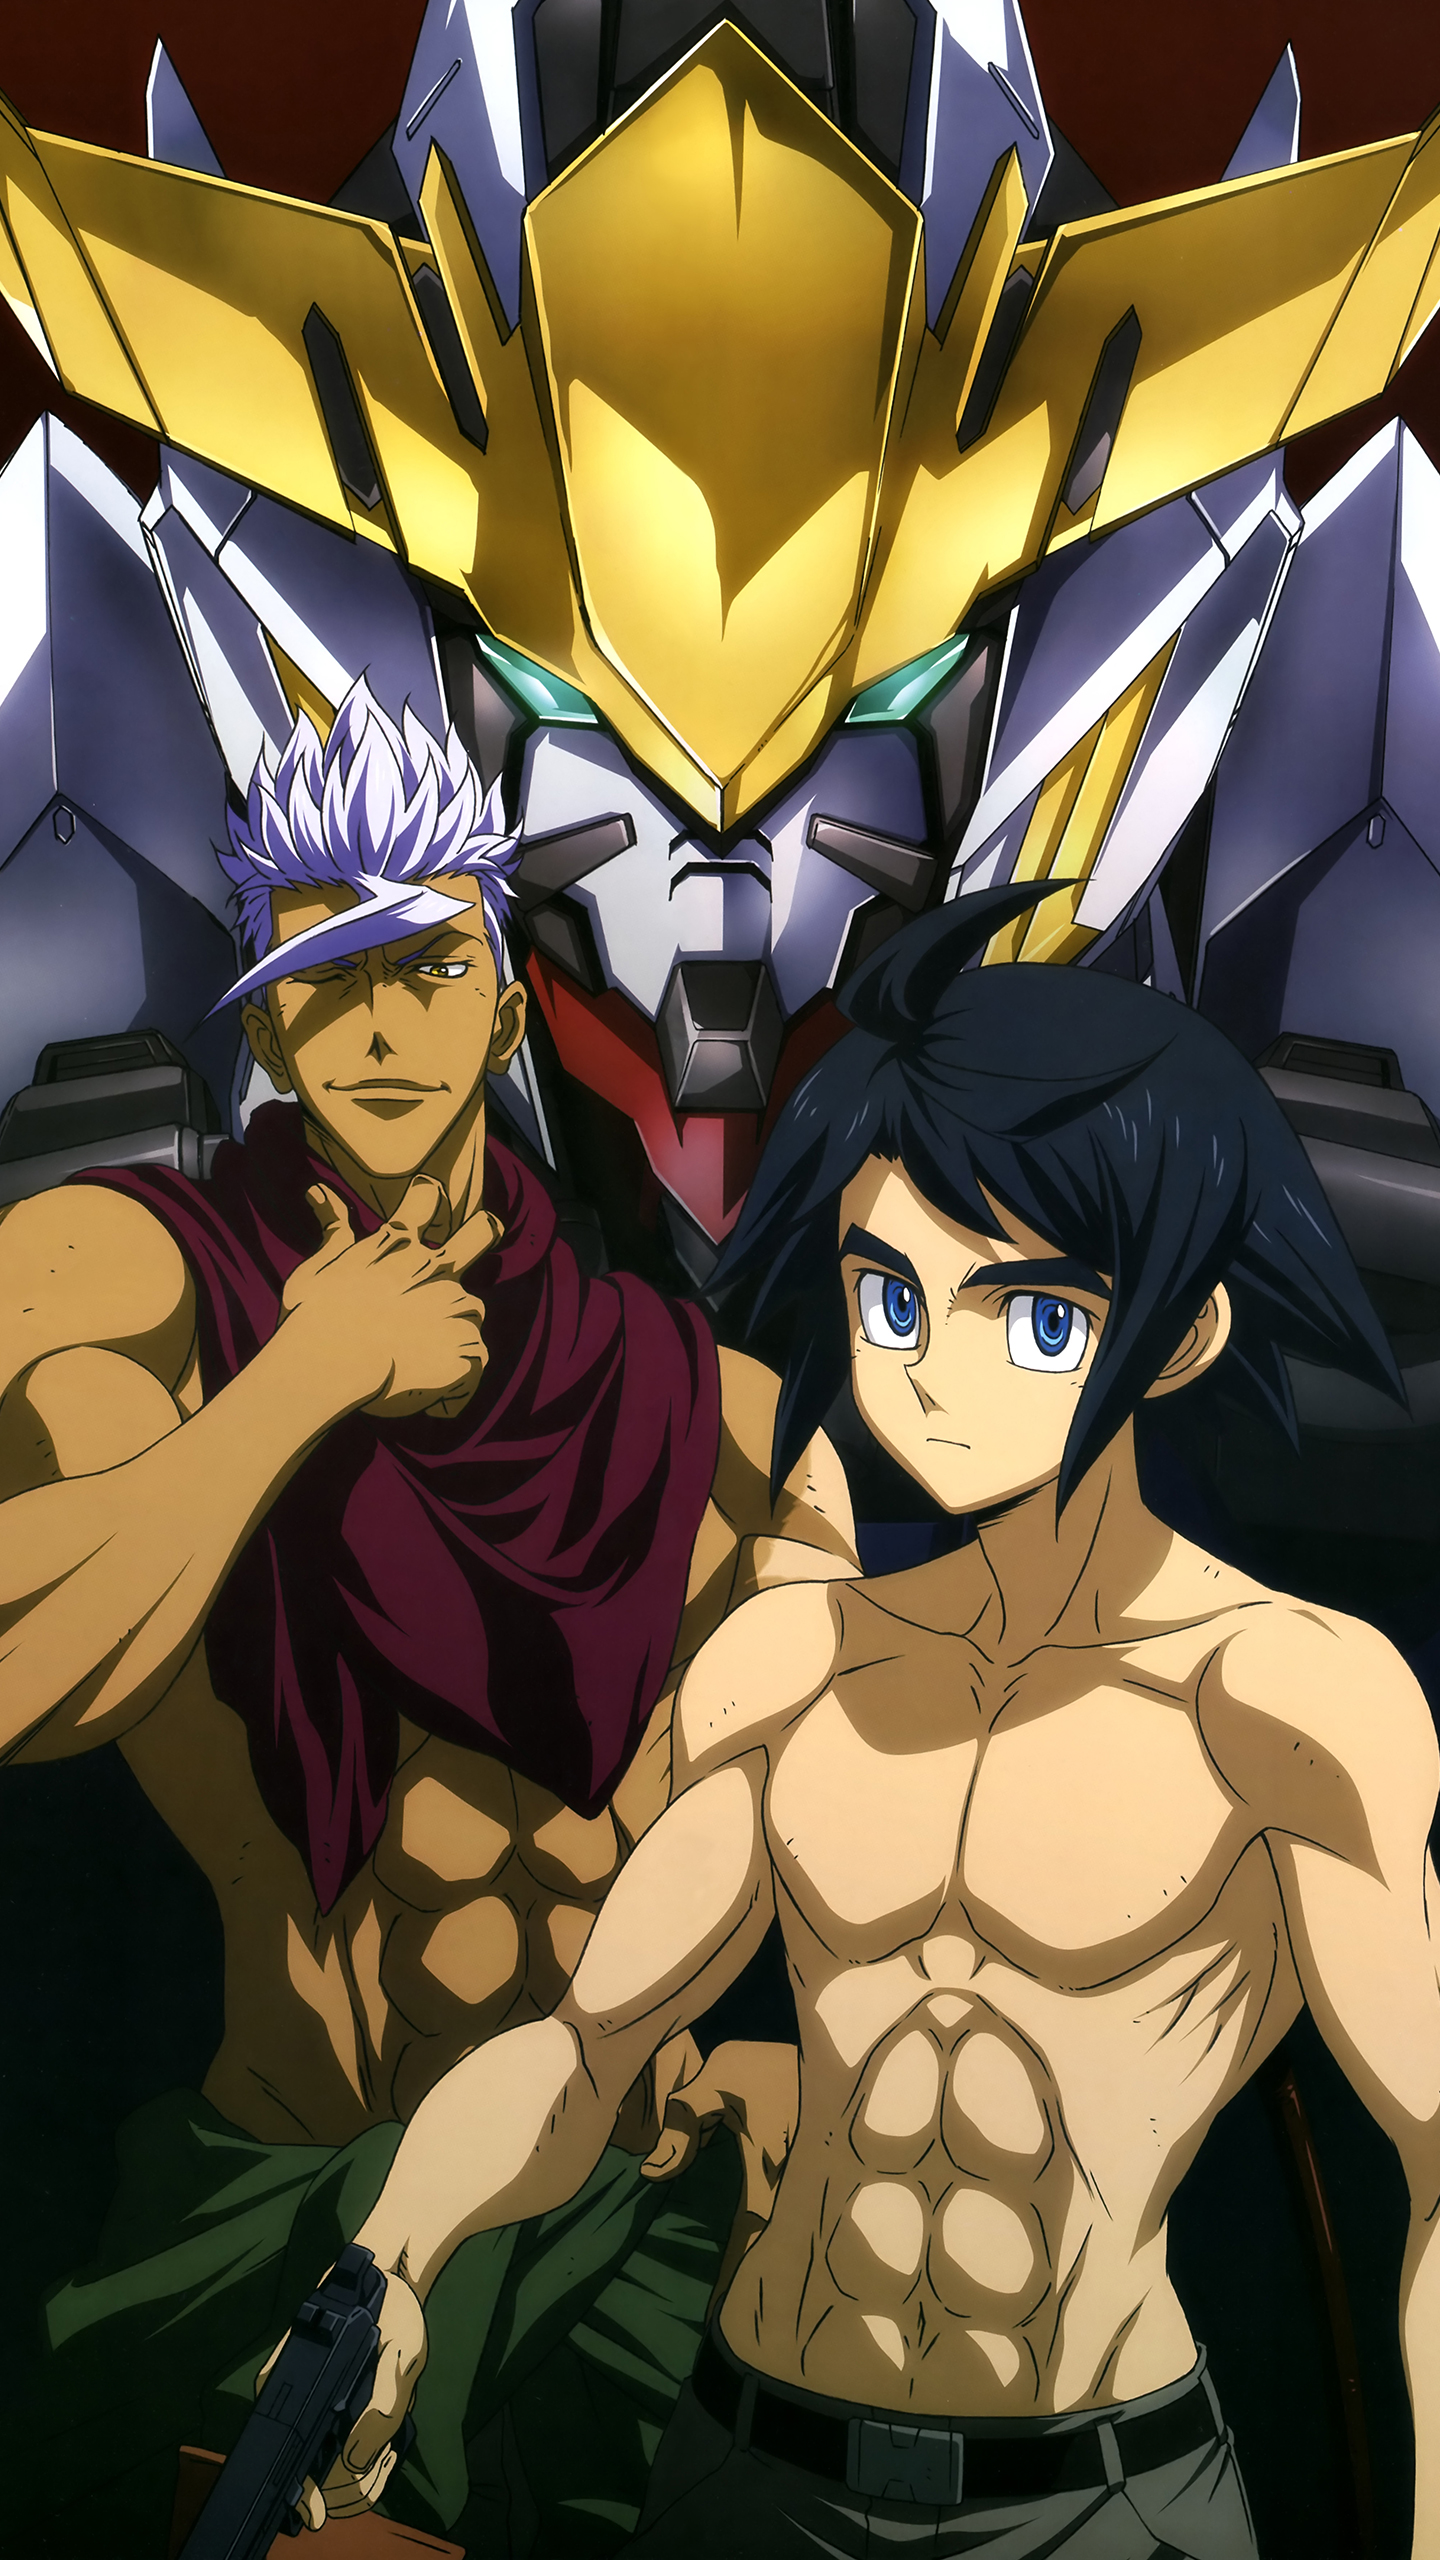 Download All In This Section - Mobile Suit Gundam Iron Blooded Orphans Calendar , HD Wallpaper & Backgrounds